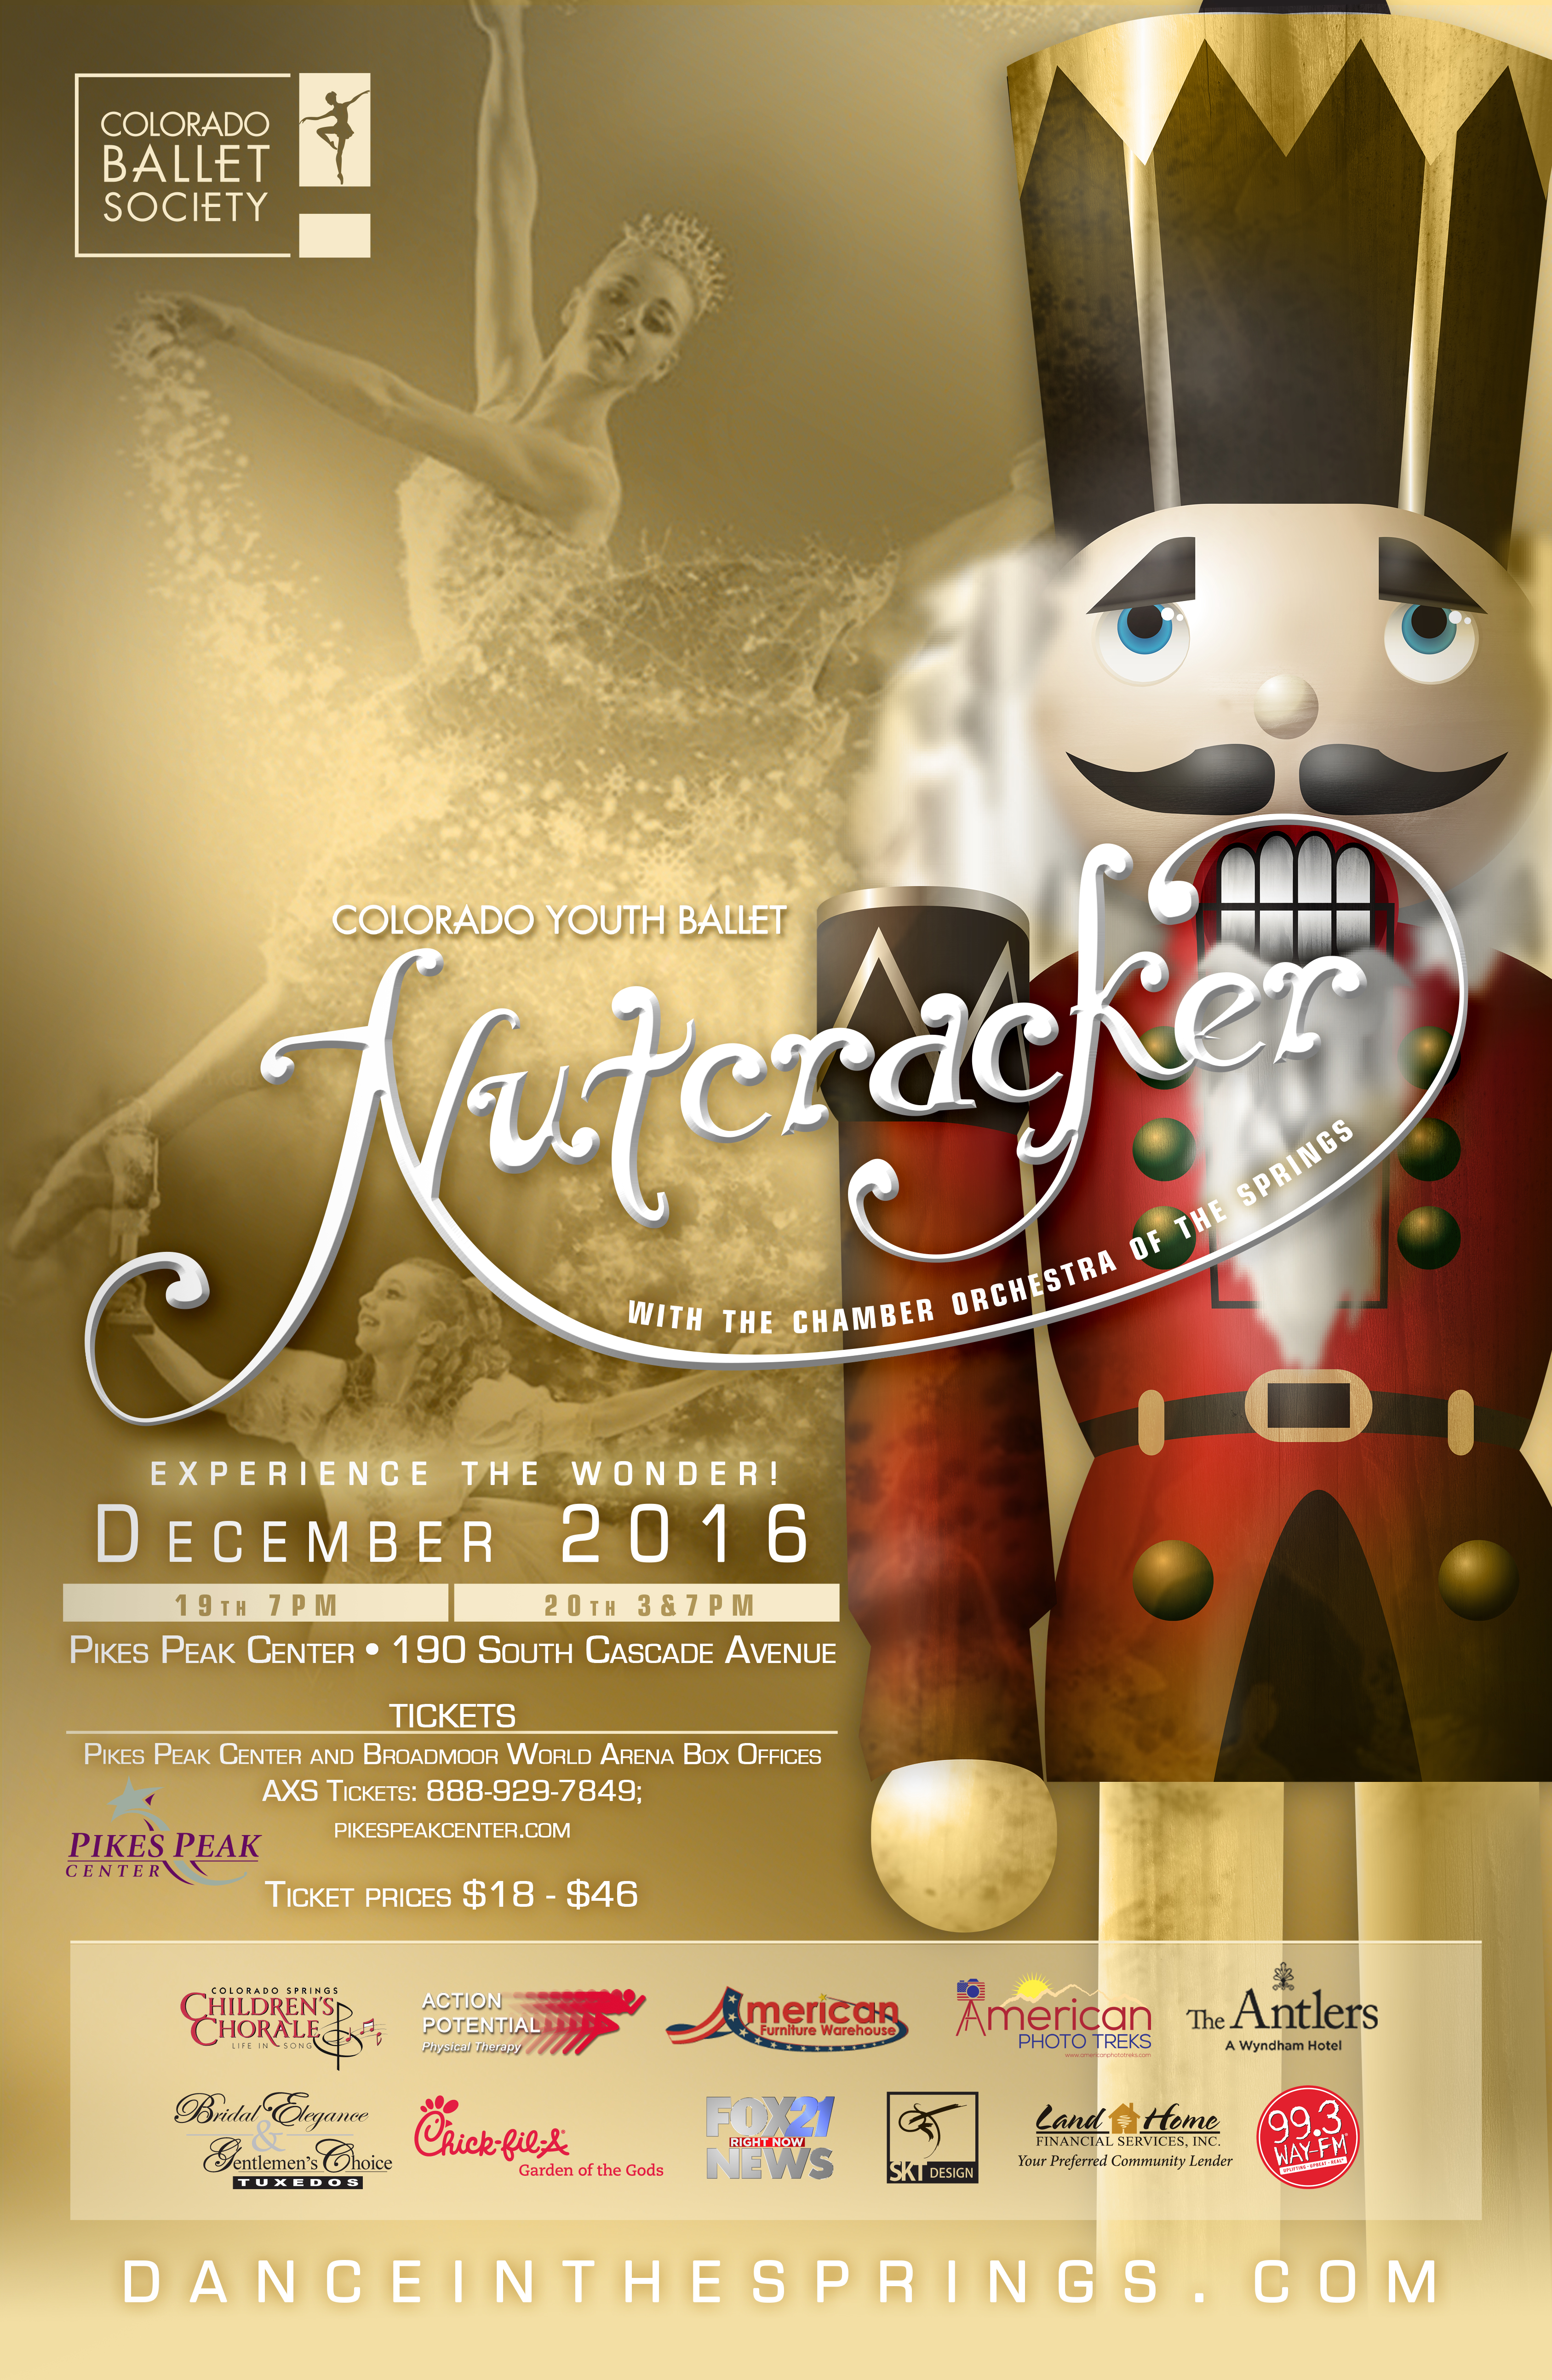 2016-12-19 FINAL CBS-Nutcracker-11x17poster-161102